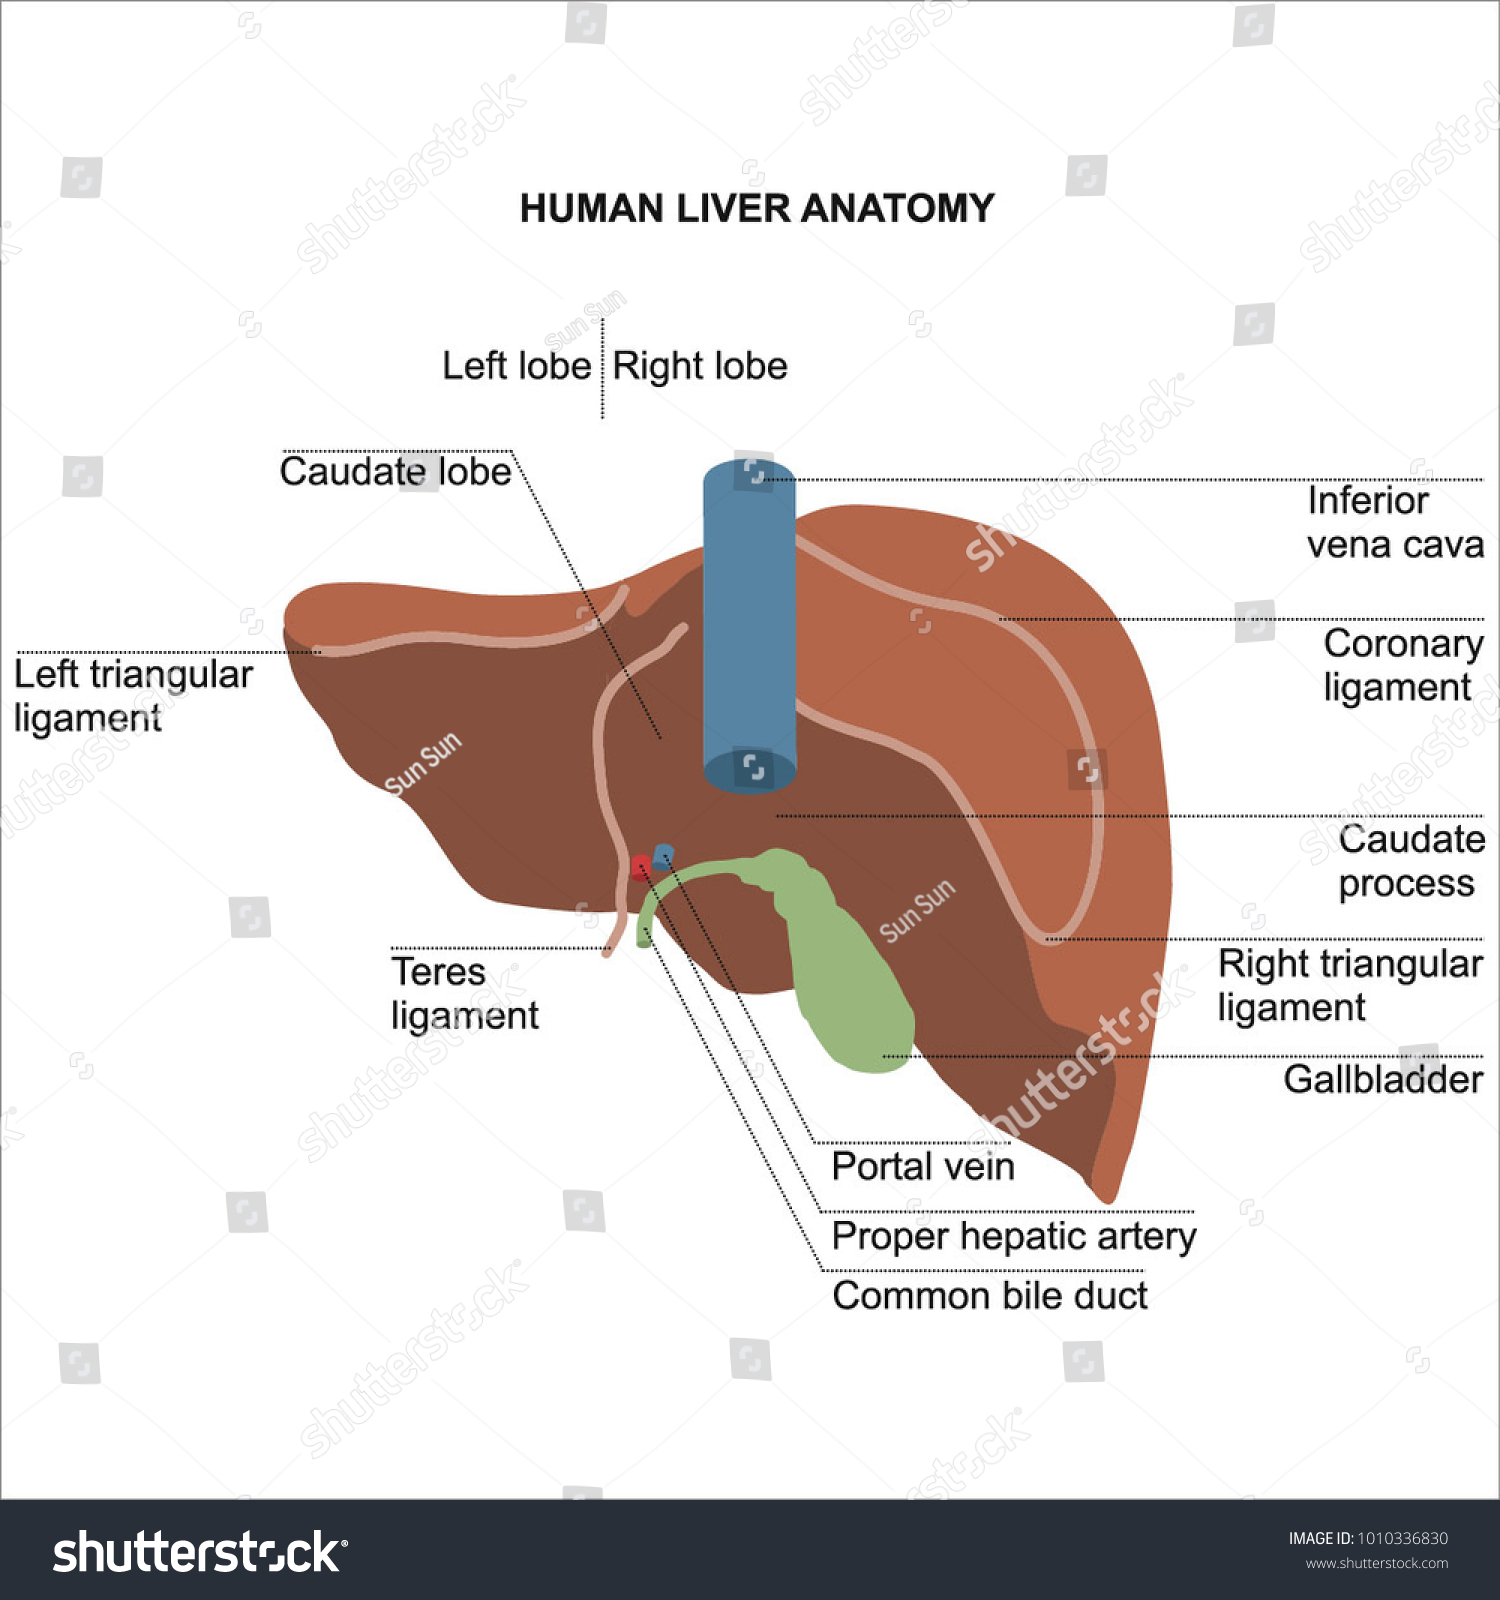 Human Liver Anatomy Diagram Student Dissertation Stock Vector ...